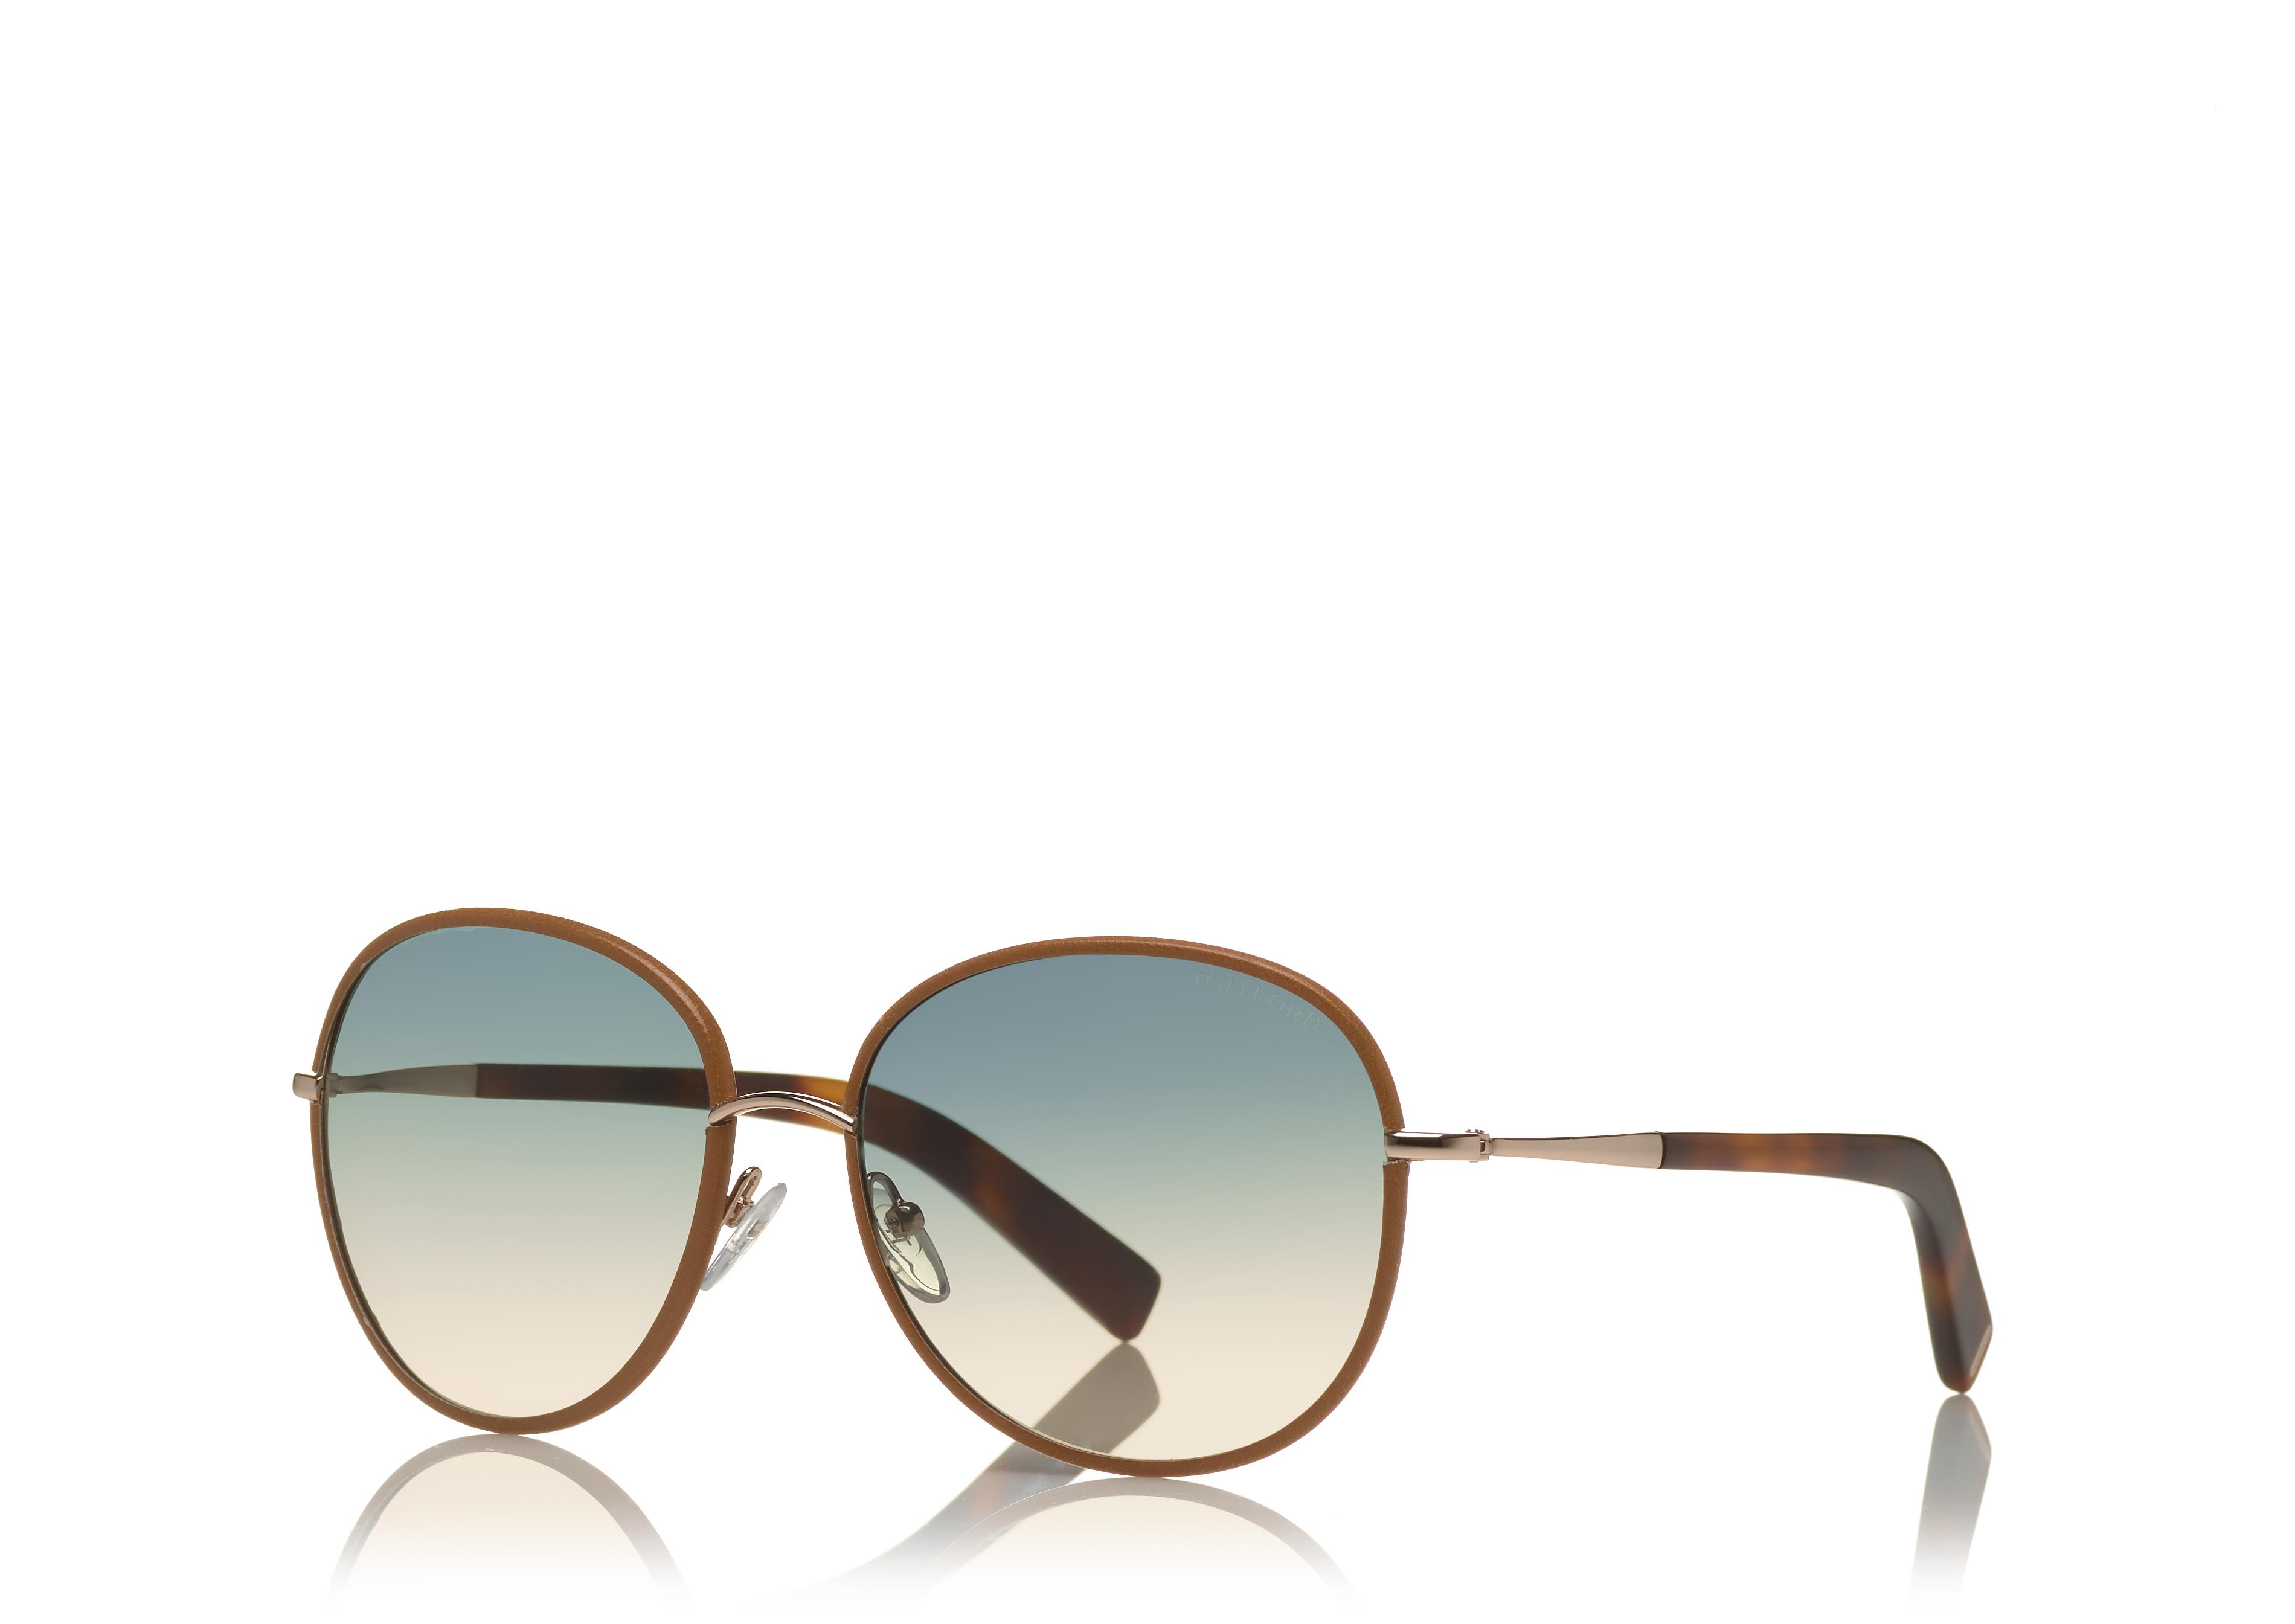 GEORGIA SUNGLASSES IN LEATHER C thumbnail